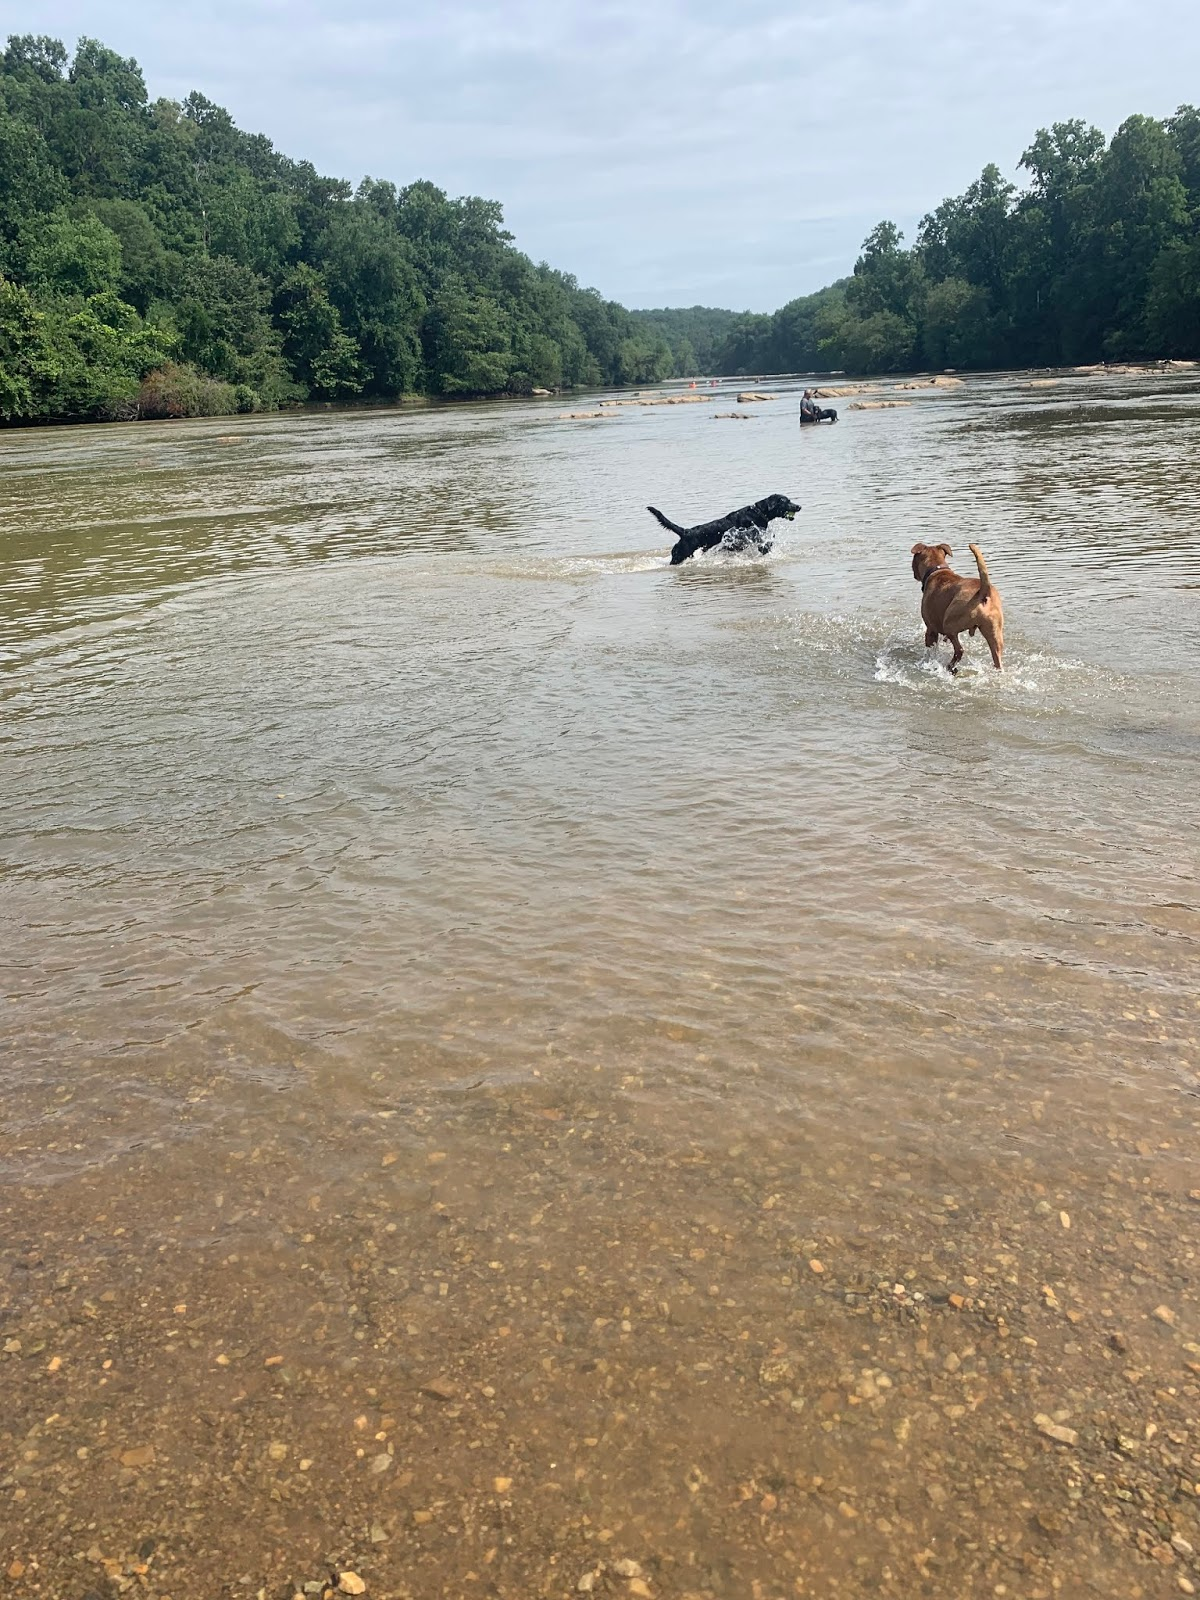 Albus leaps through the river waters with a couple of other dogs, he's stolen someone's tennis ball.